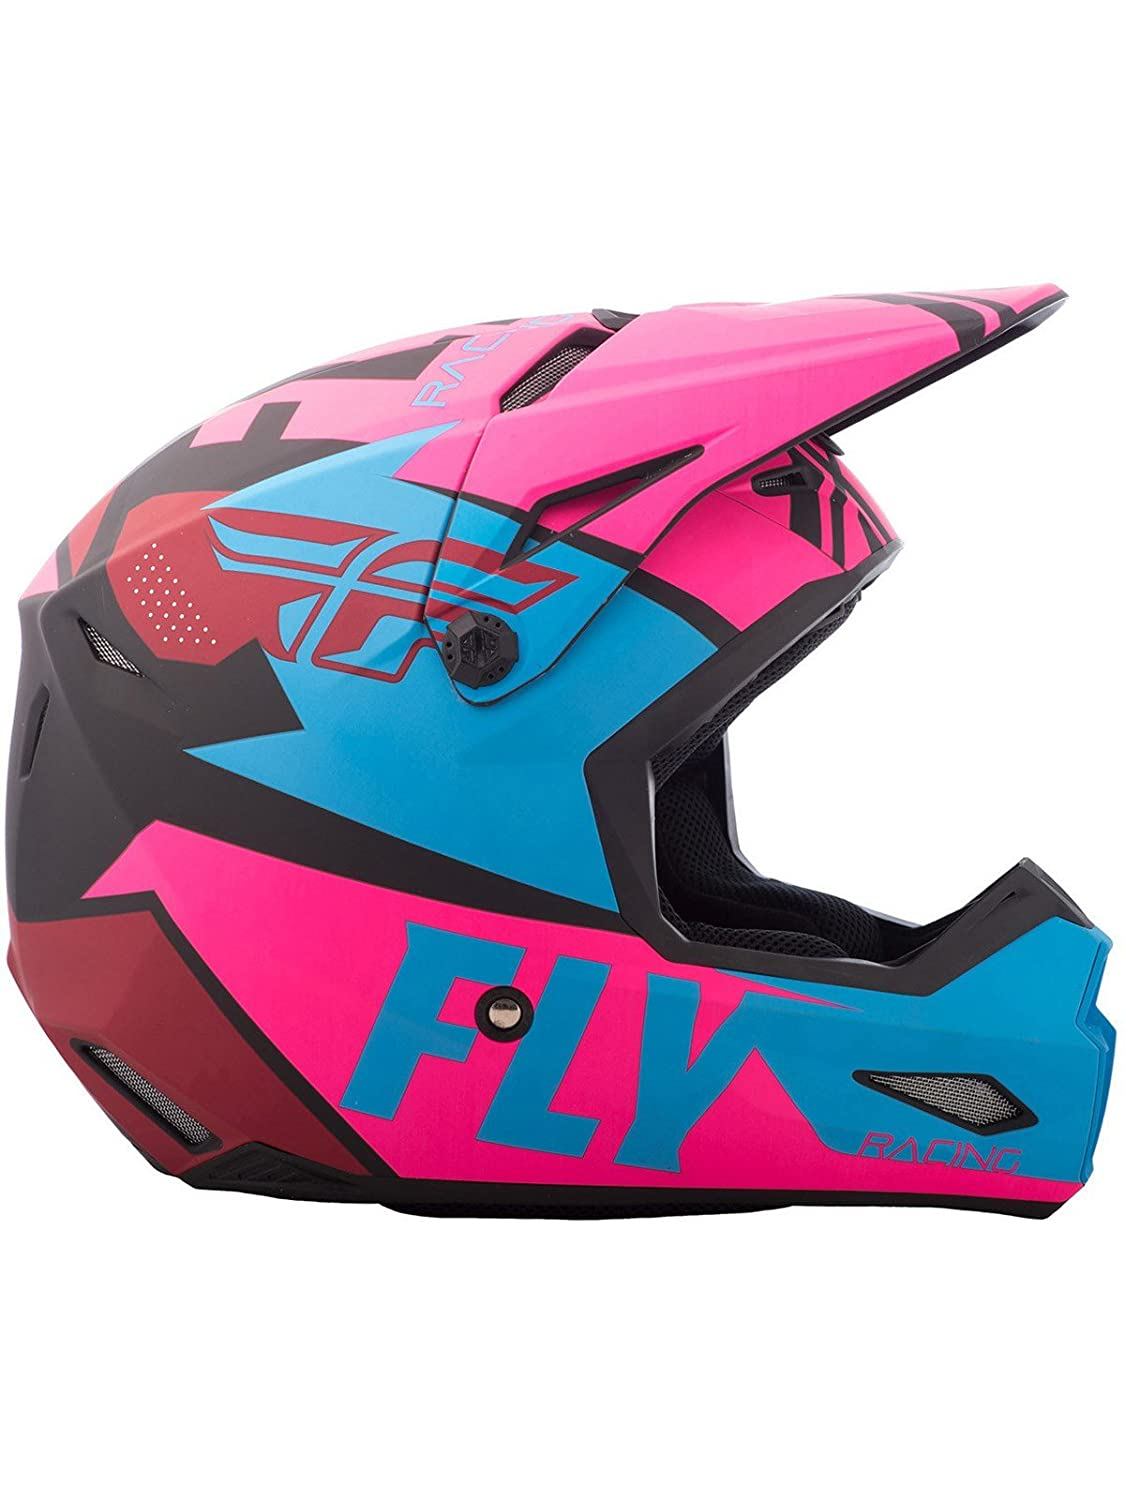 Amazon.com: FLY RACING ELITE GUILD HELMET MATTE NEON PINK/BLUE/BLACK MD 73-8609-6-M: Automotive